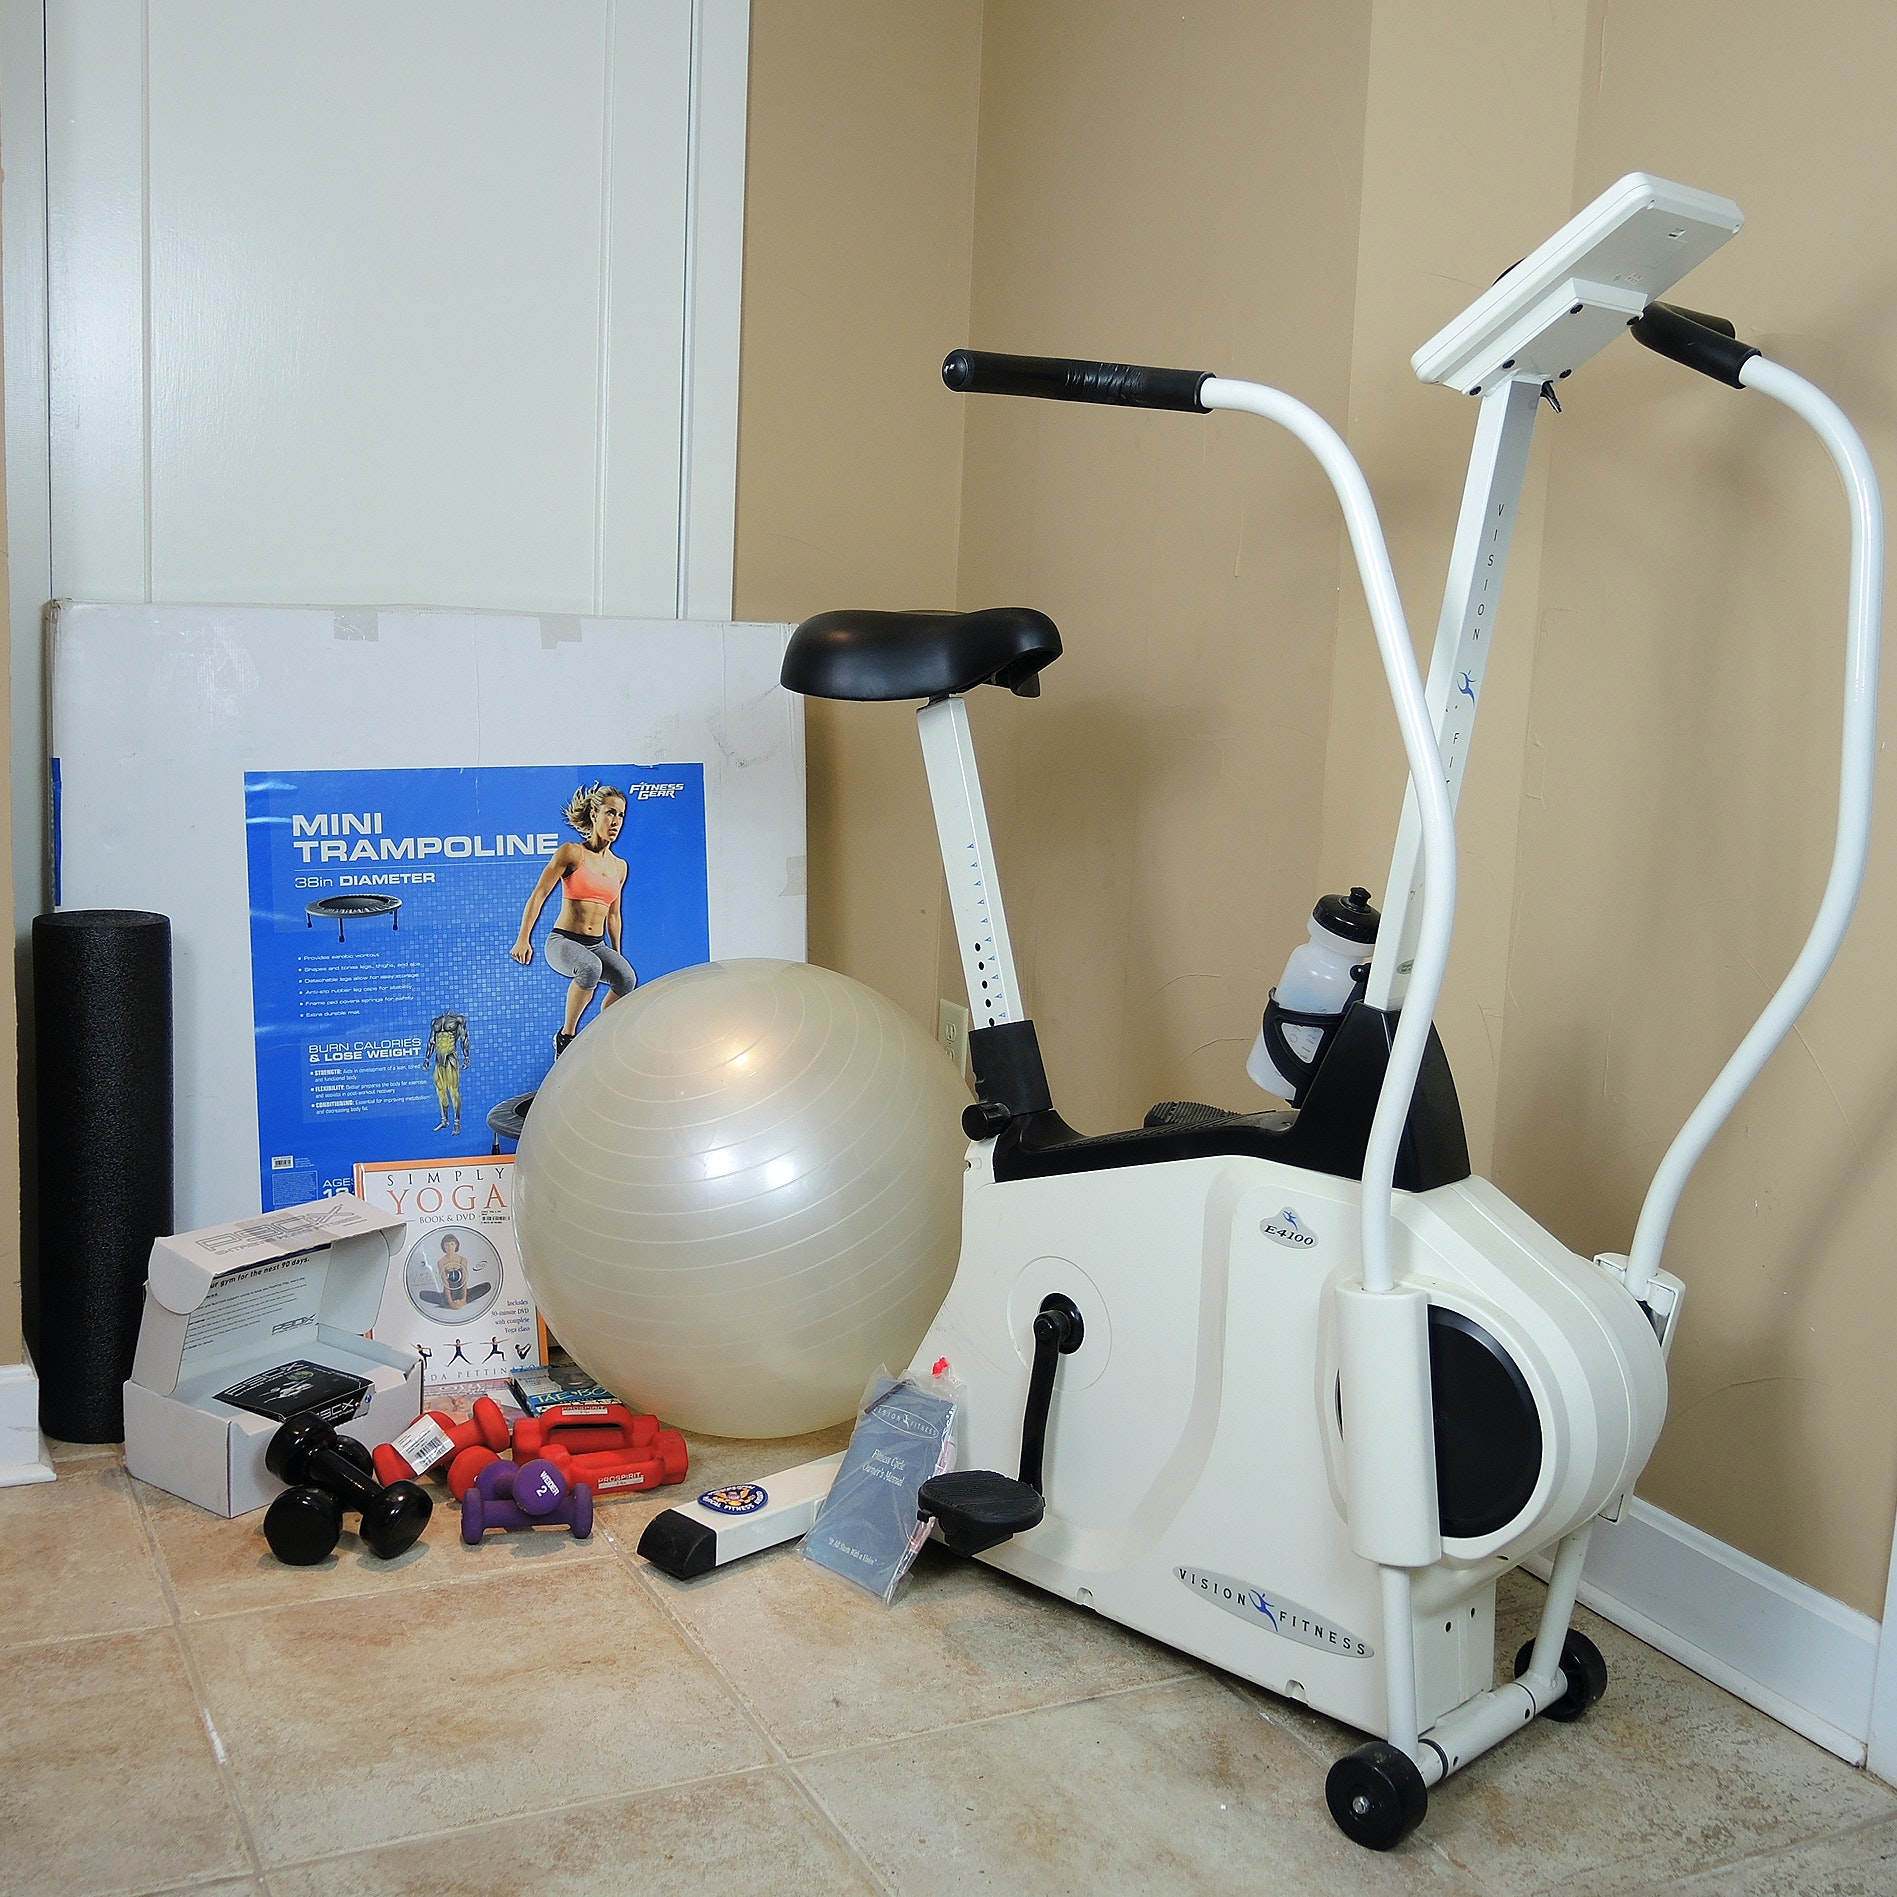 Vision Fitness E4100 Cycle Trainer and Fitness Equipment